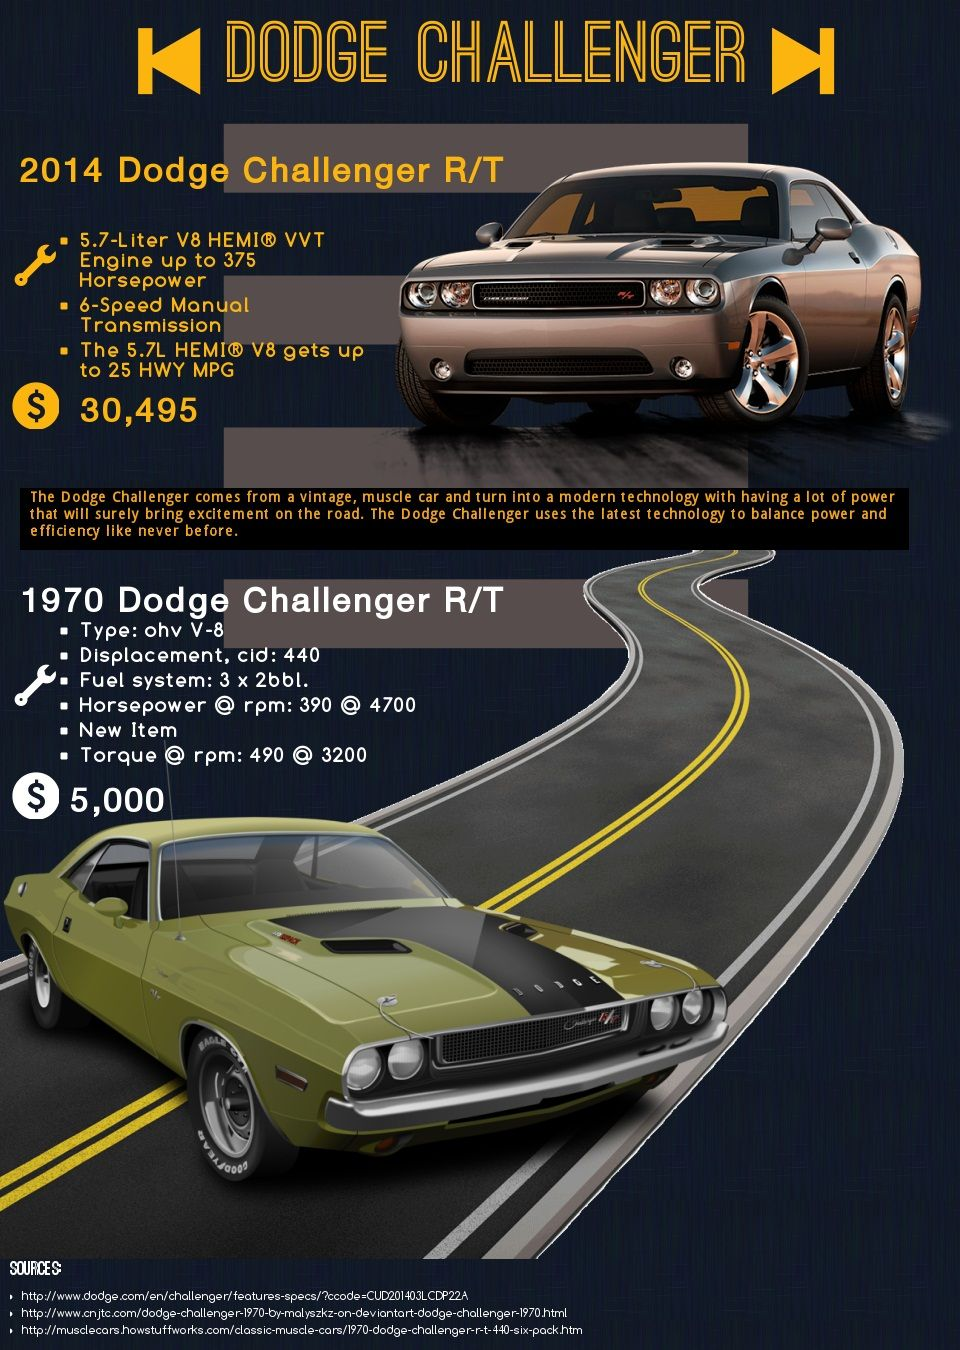 A Vintage Muscle car and turns into a modern technology with having ...